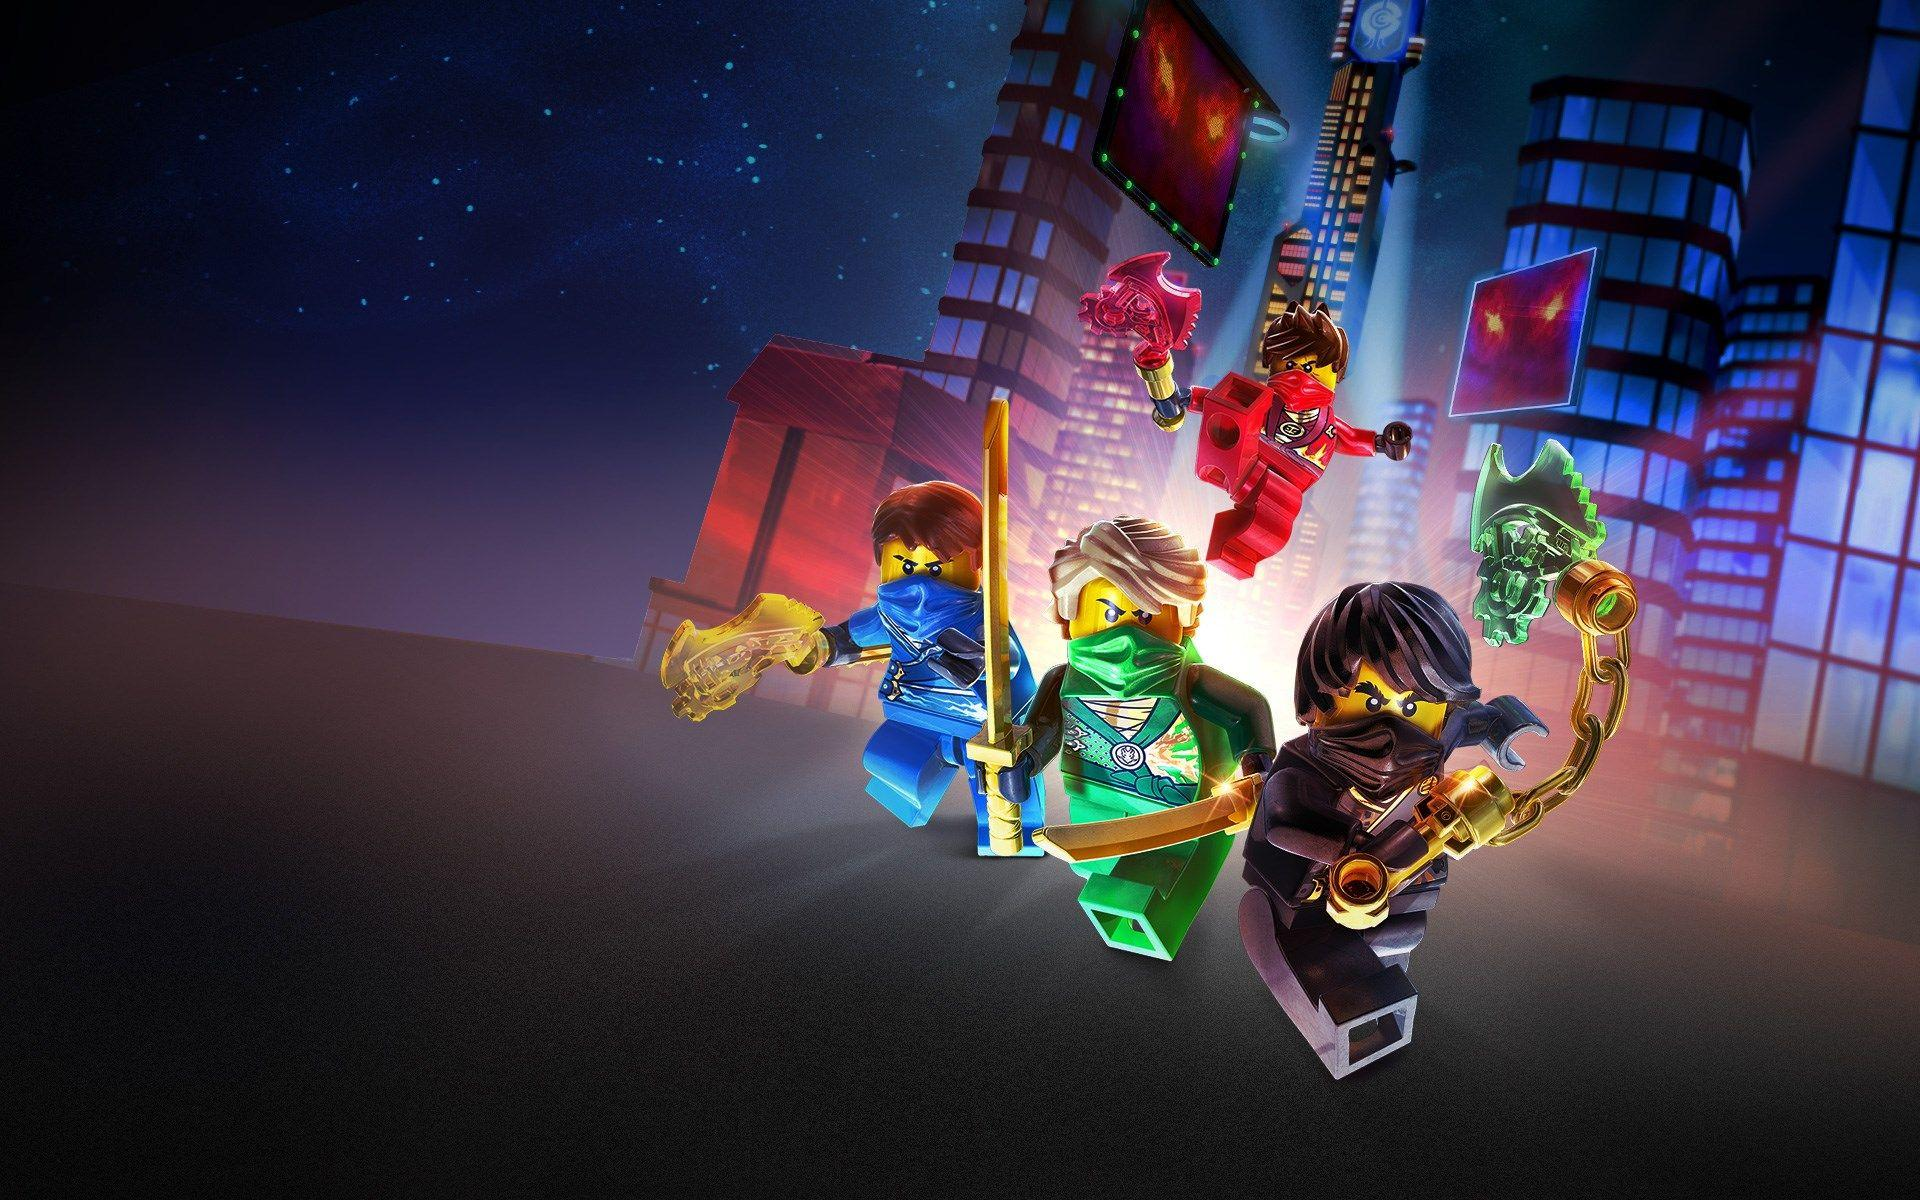 The LEGO Ninjago Movie Wallpapers - Wallpaper CaveNinjago Wallpaper 2014